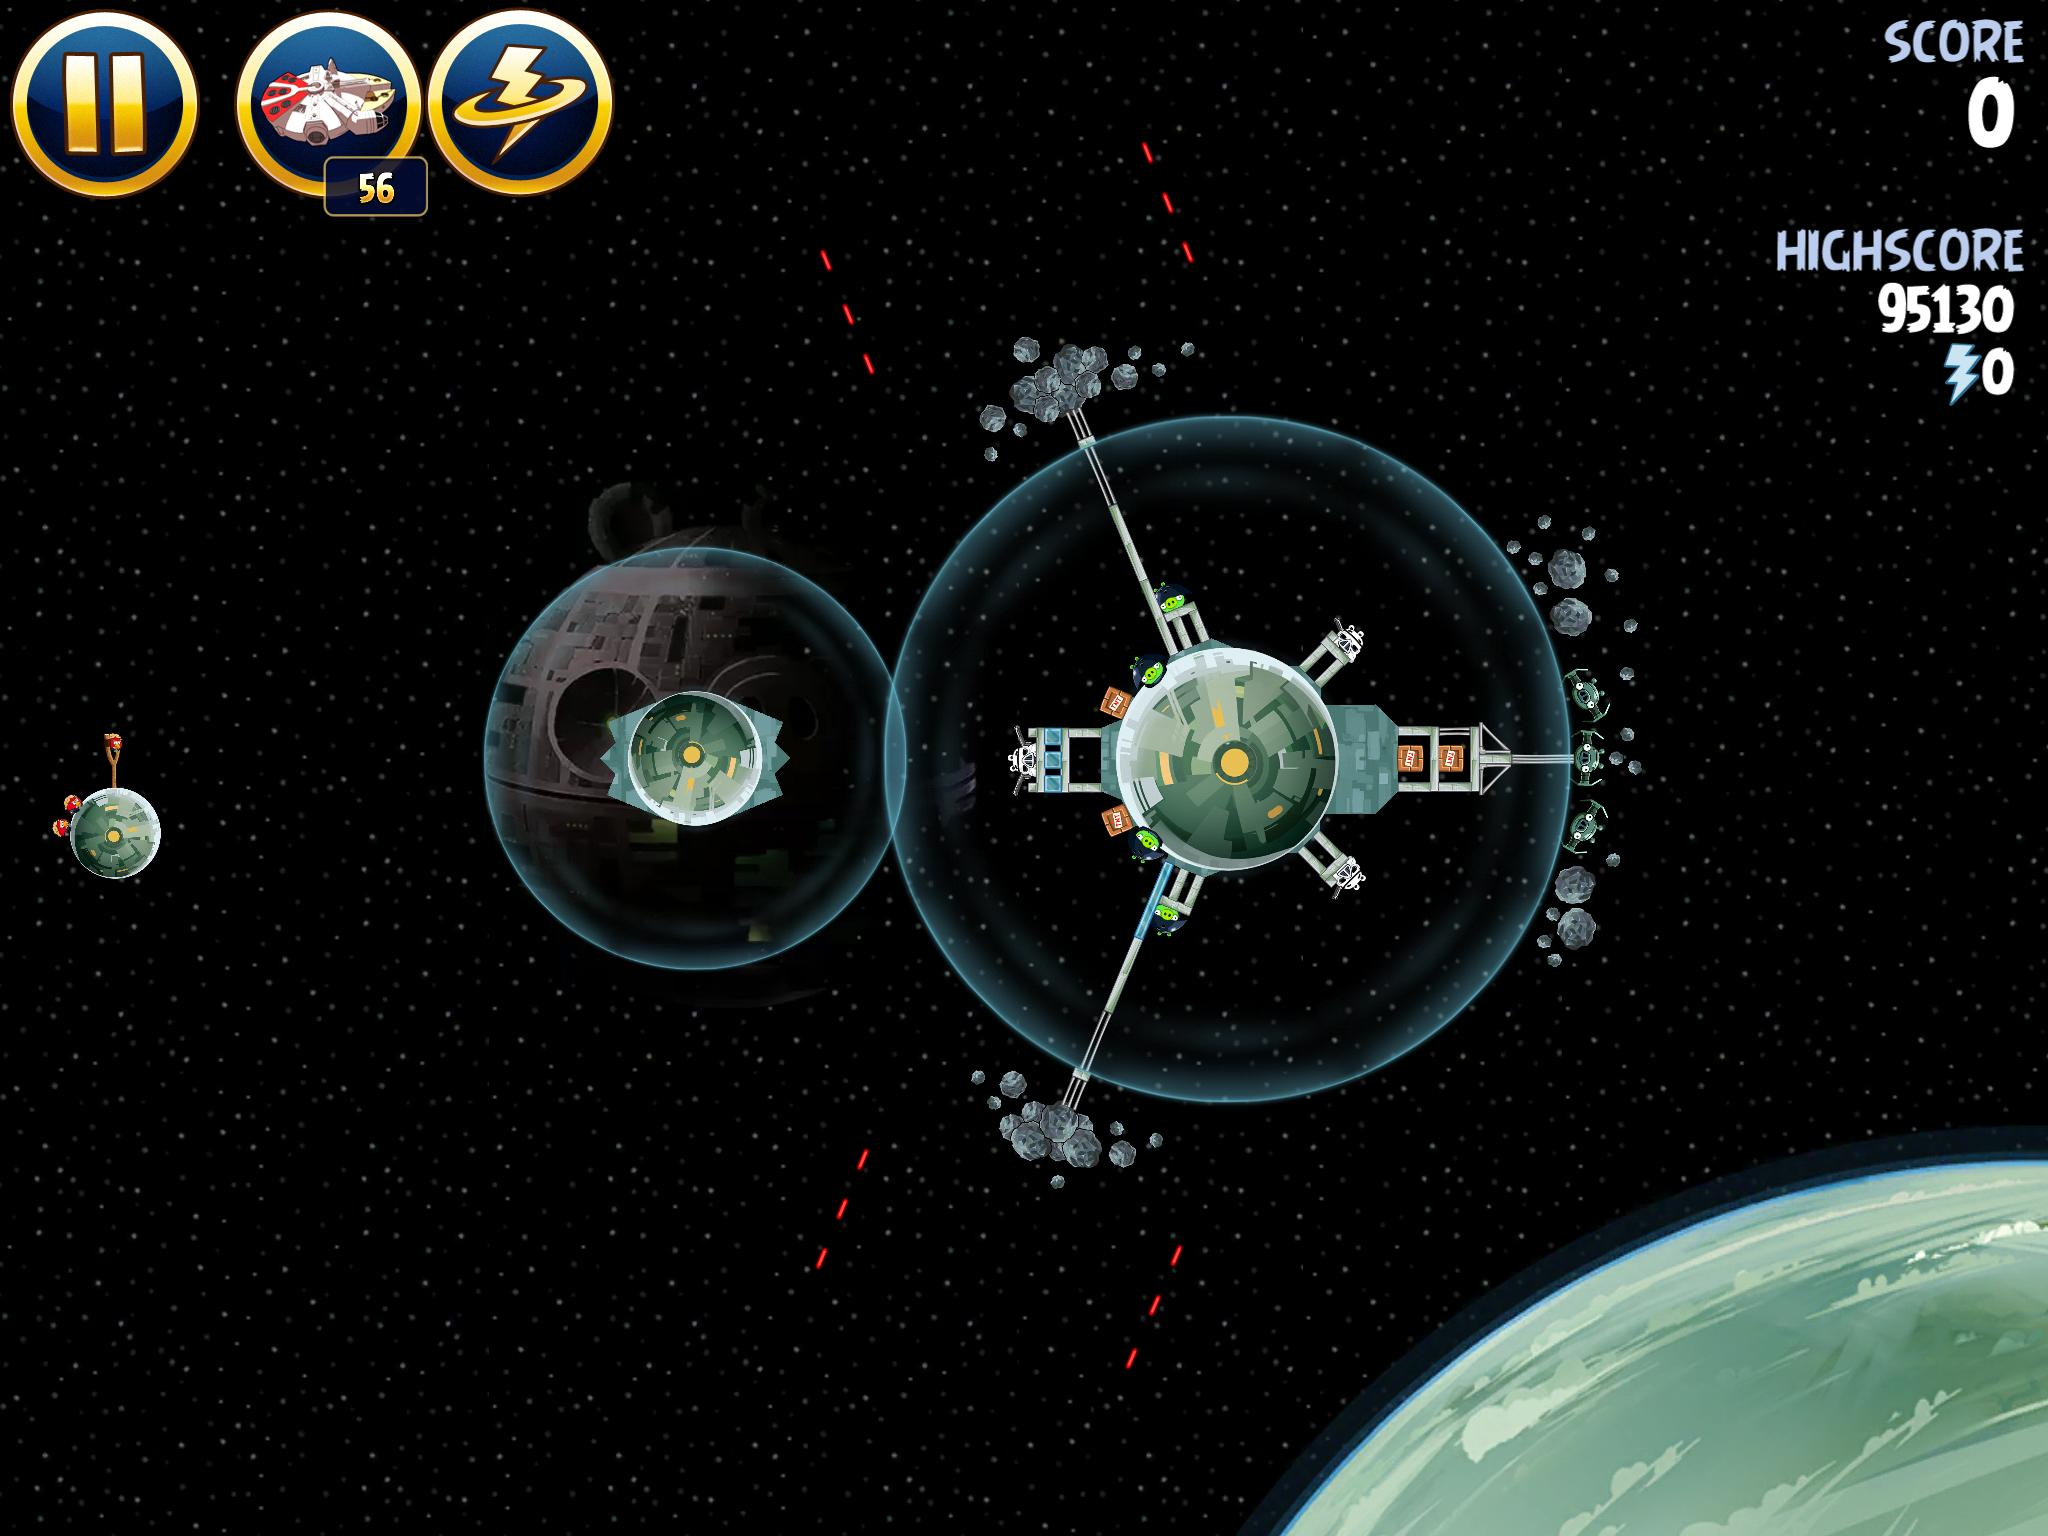 Death Star 2 6-14 (Angry Birds Star Wars)